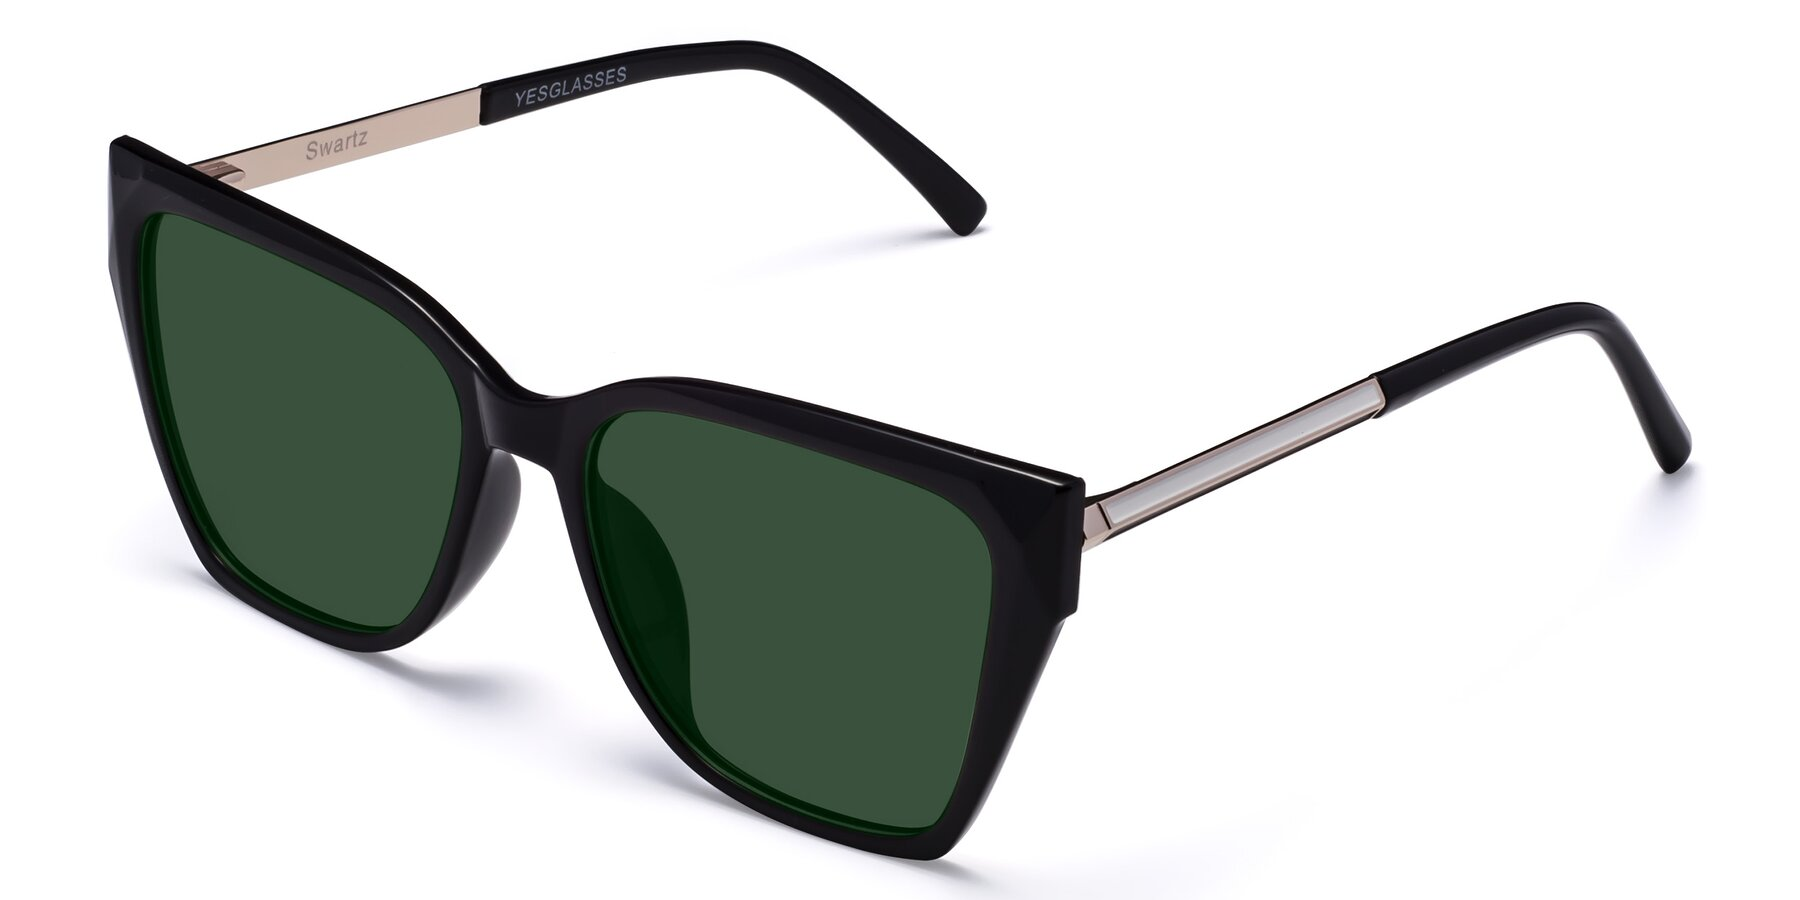 Angle of Swartz in Black with Green Tinted Lenses